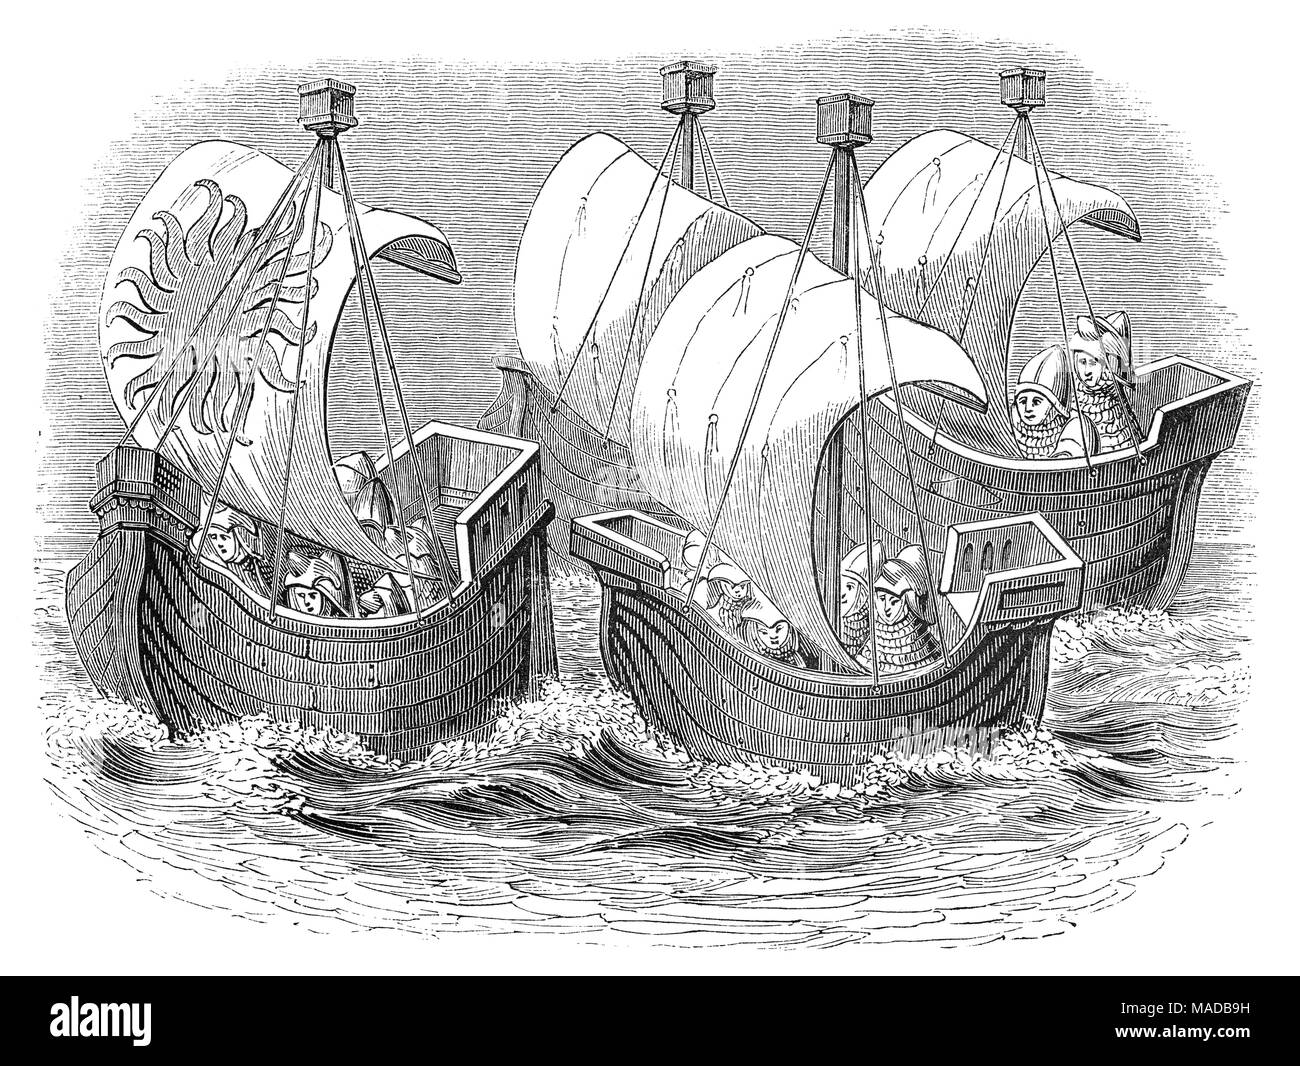 Seagoing ships at the time of King Richard II. He was  King of England from 1377 until he was deposed on 30 September 1399. Richard, a son of Edward the Black Prince, was born in Bordeaux during the reign of his grandfather, Edward III. - Stock Image